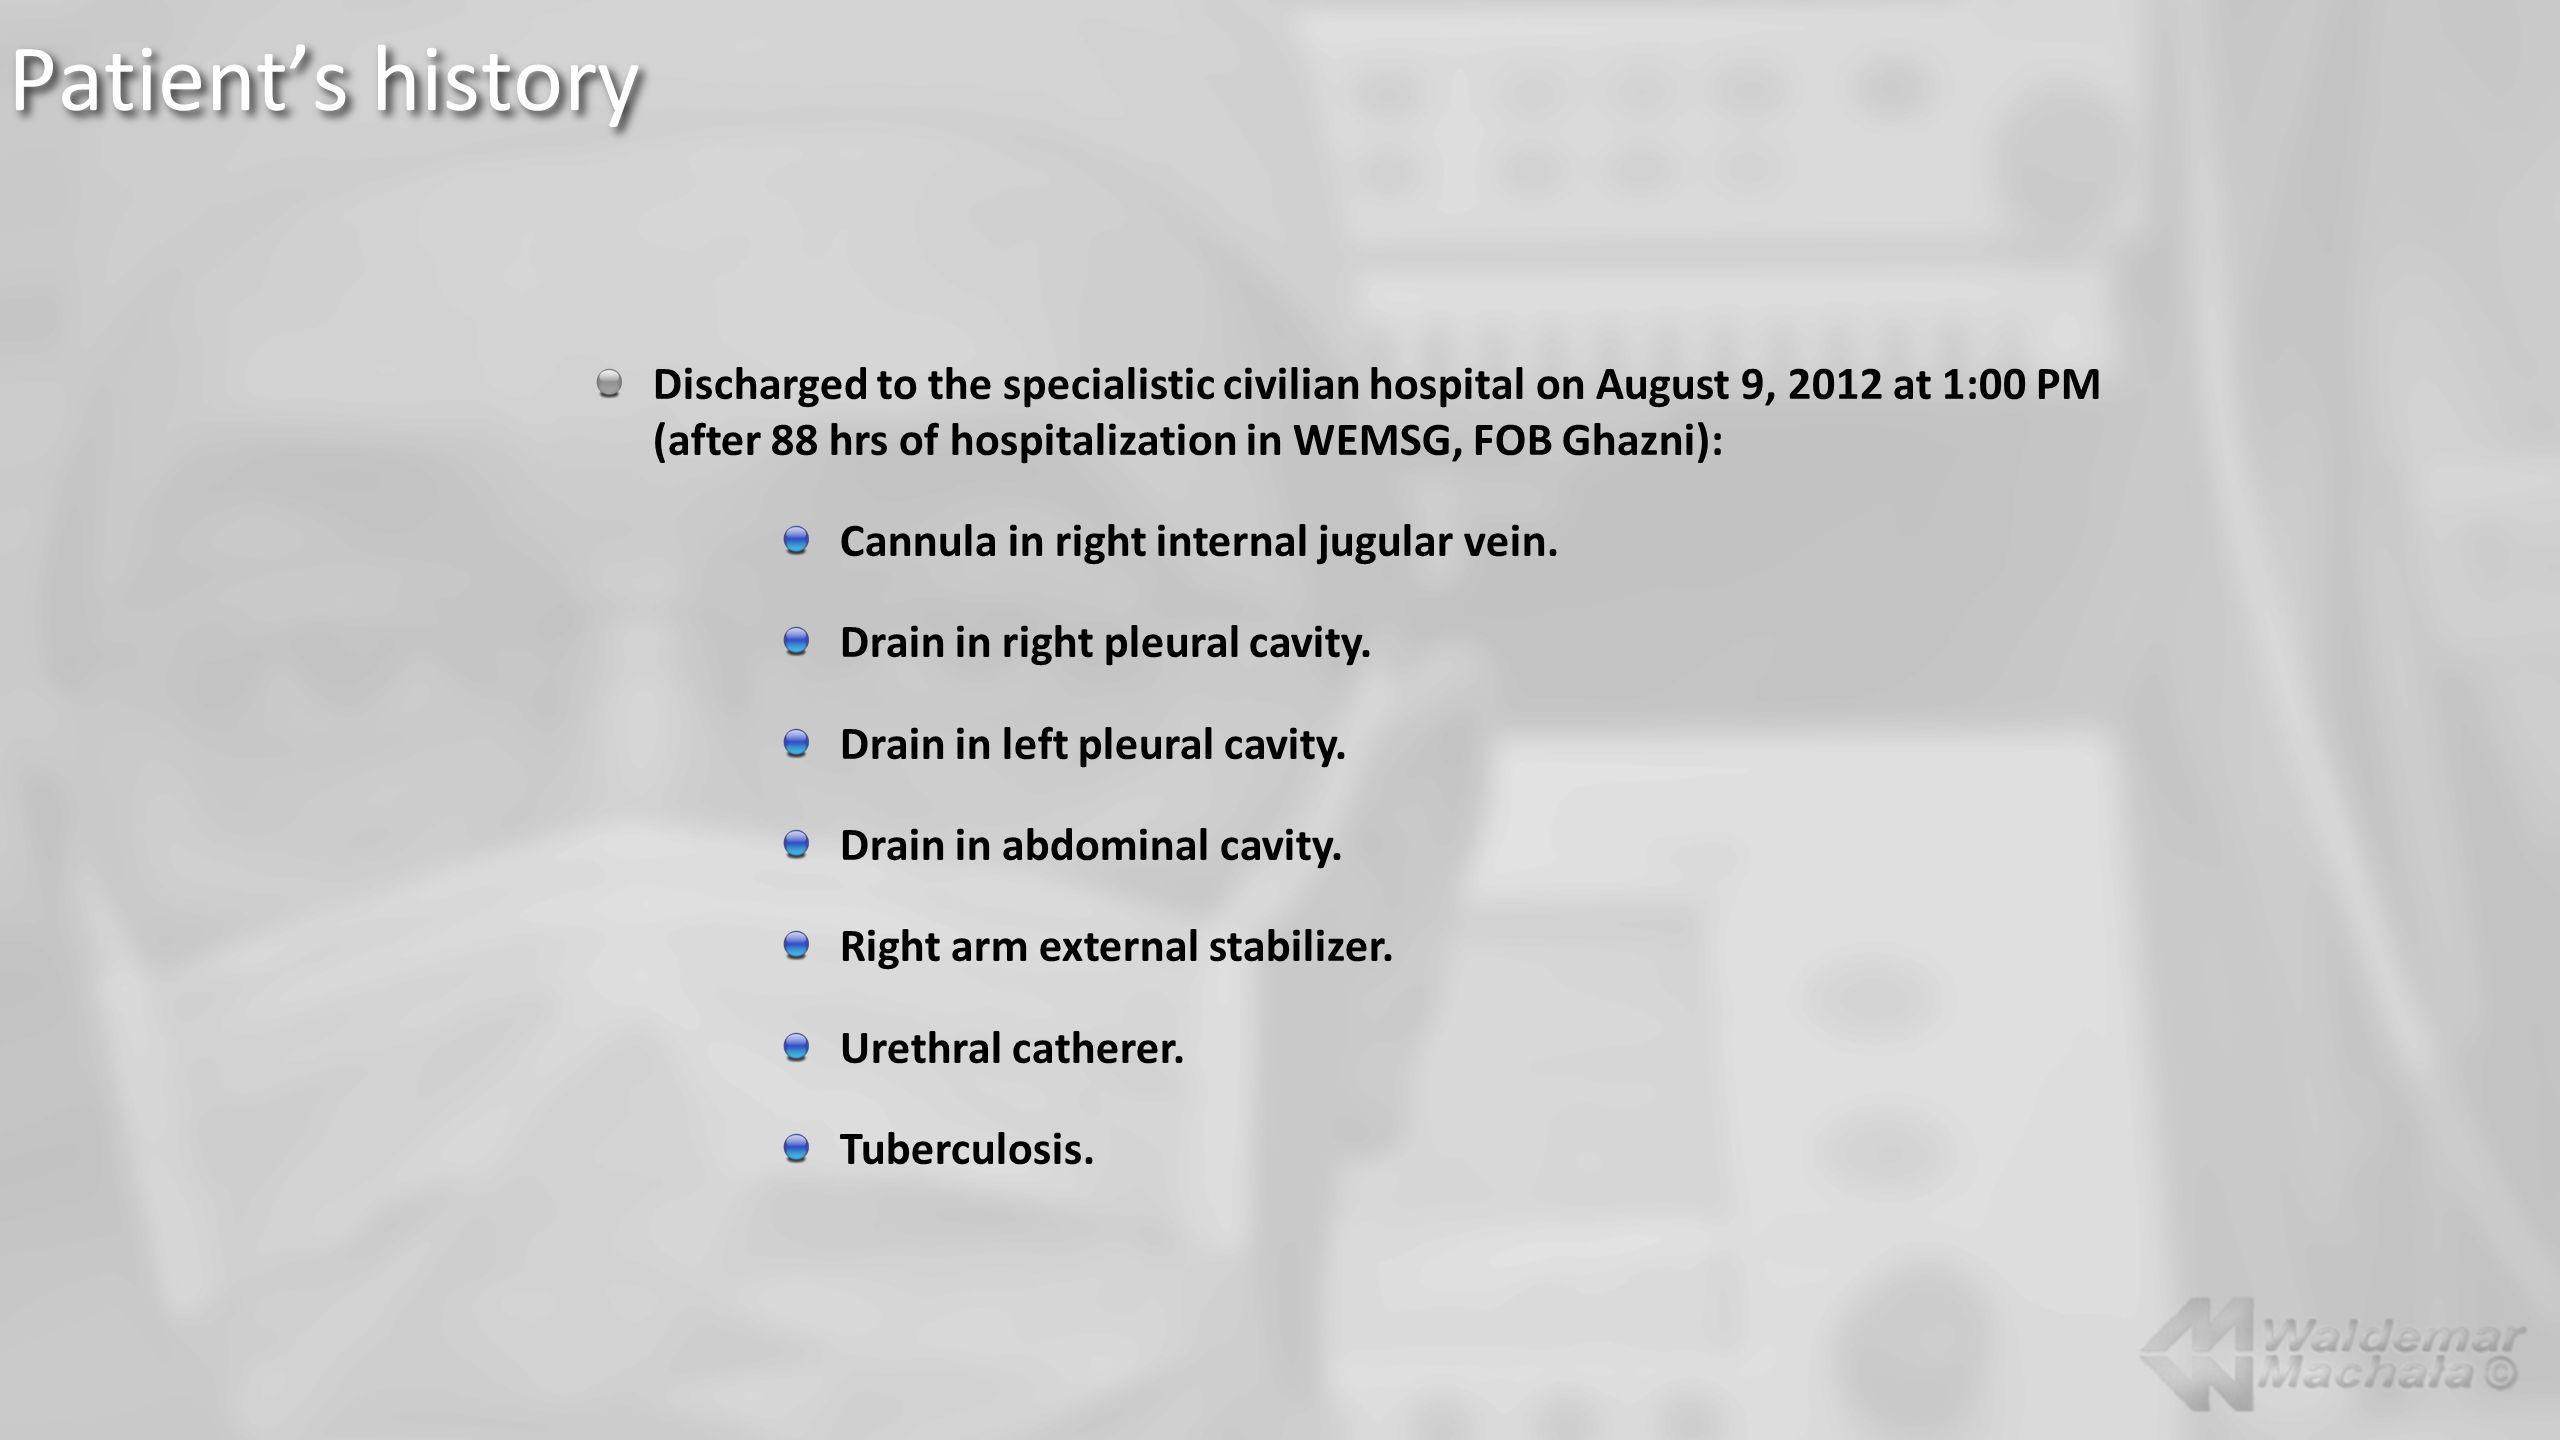 Discharged to the specialistic civilian hospital on August 9, 2012 at 1:00 PM (after 88 hrs of hospitalization in WEMSG, FOB Ghazni): Cannula in right